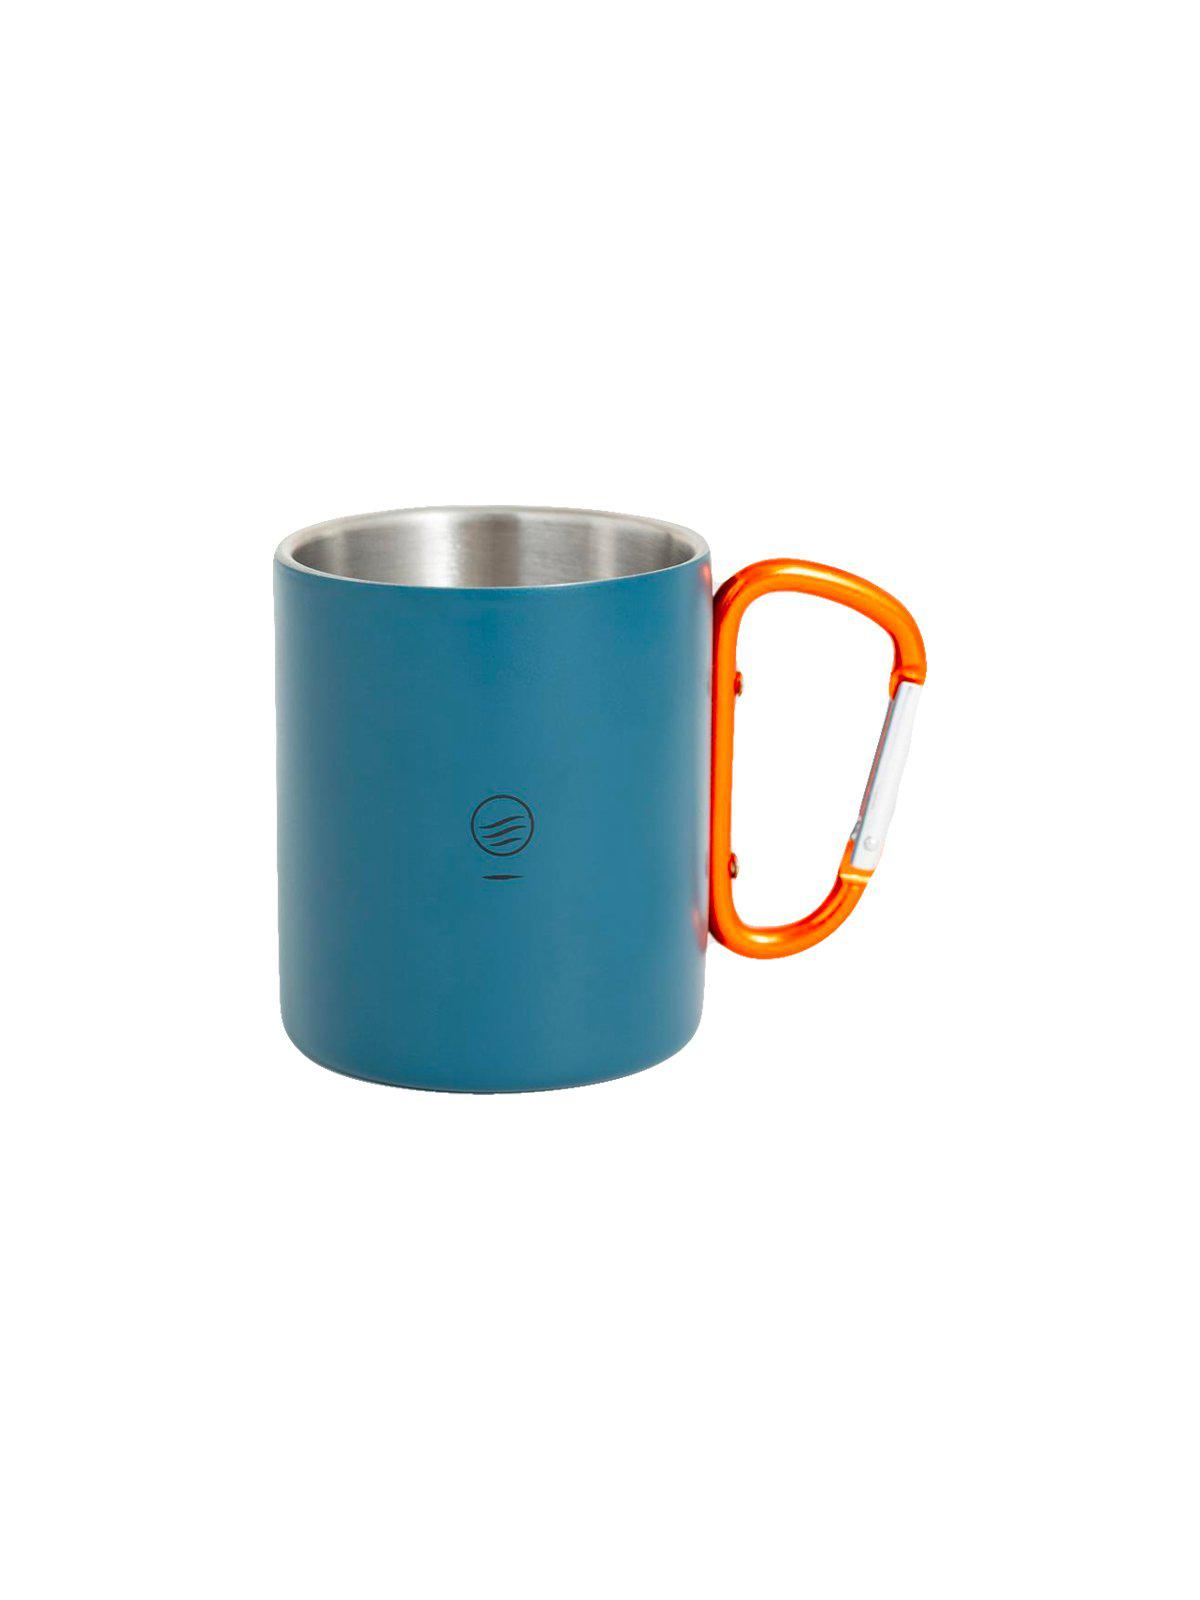 United by Blue 10oz Stainless Steel Carabiner Cup Passing Through - MORE by Morello Indonesia